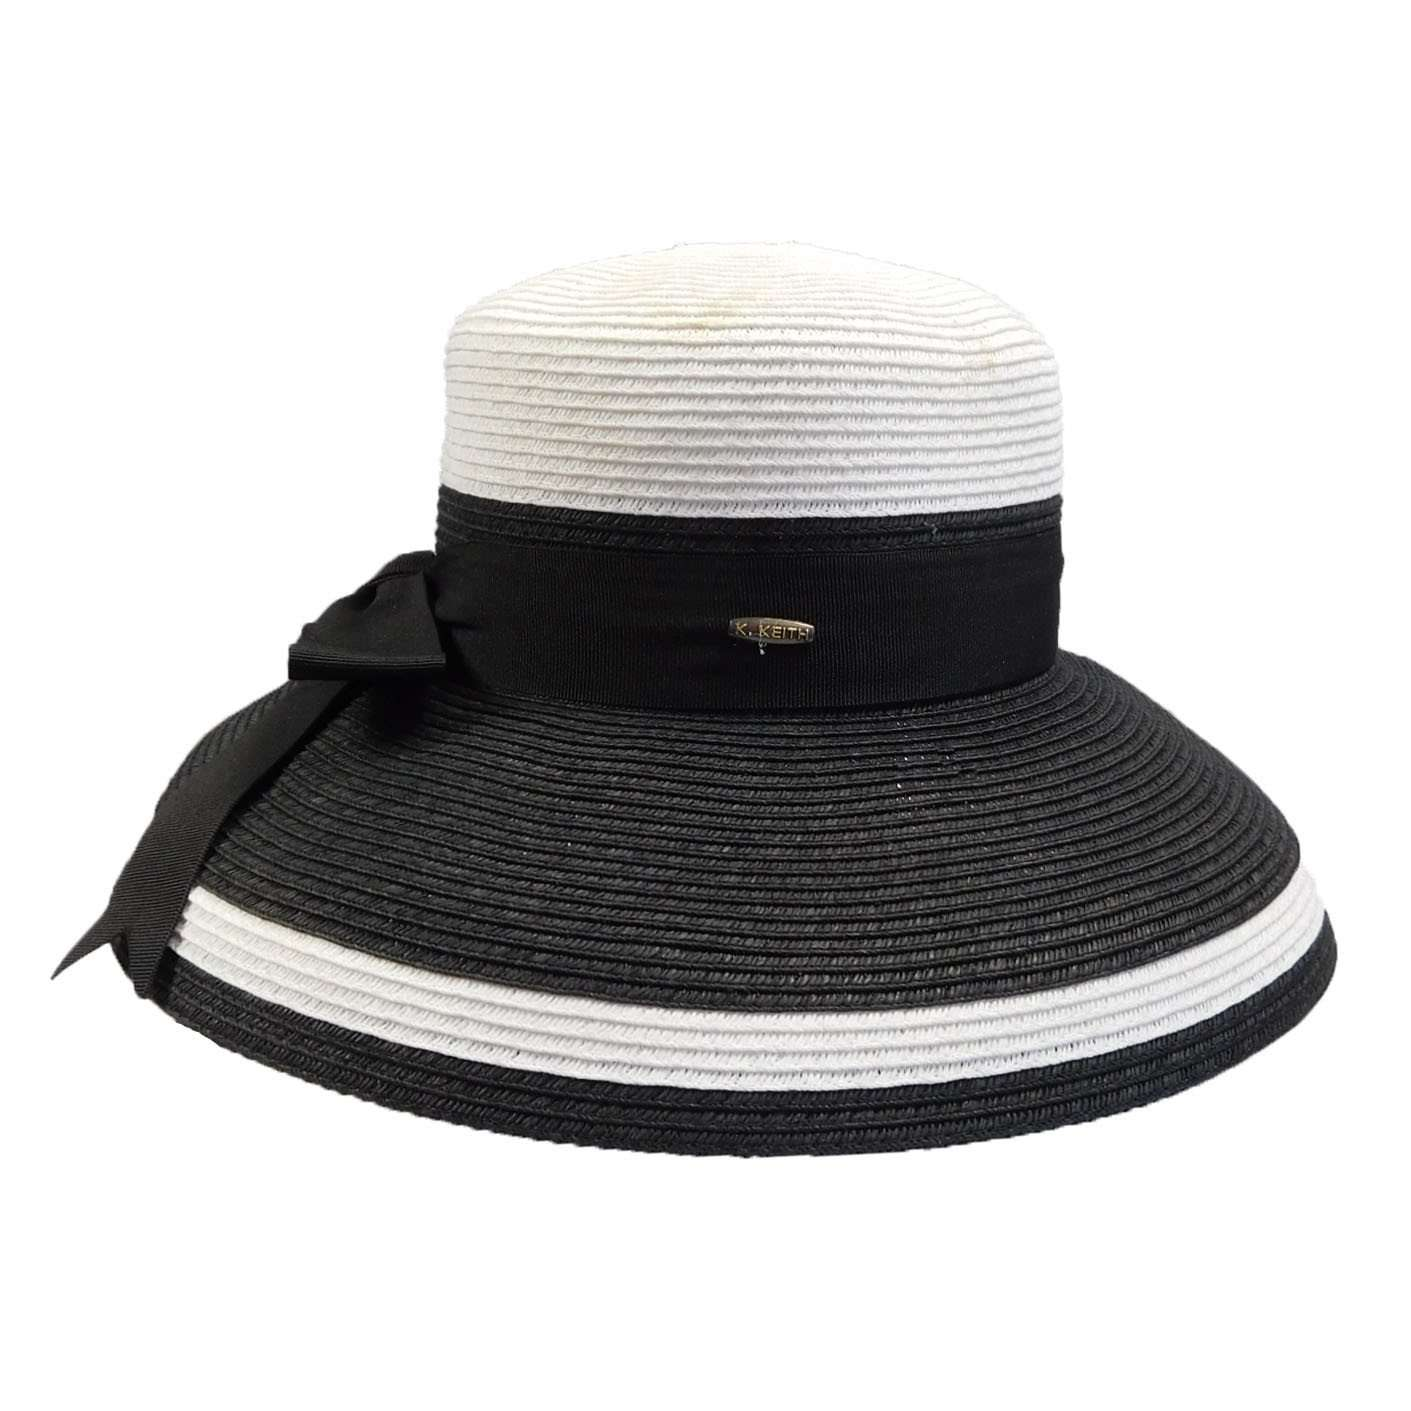 8a2512fec18 Tiffany Style Summer Hat by Karen Keith - Black and White